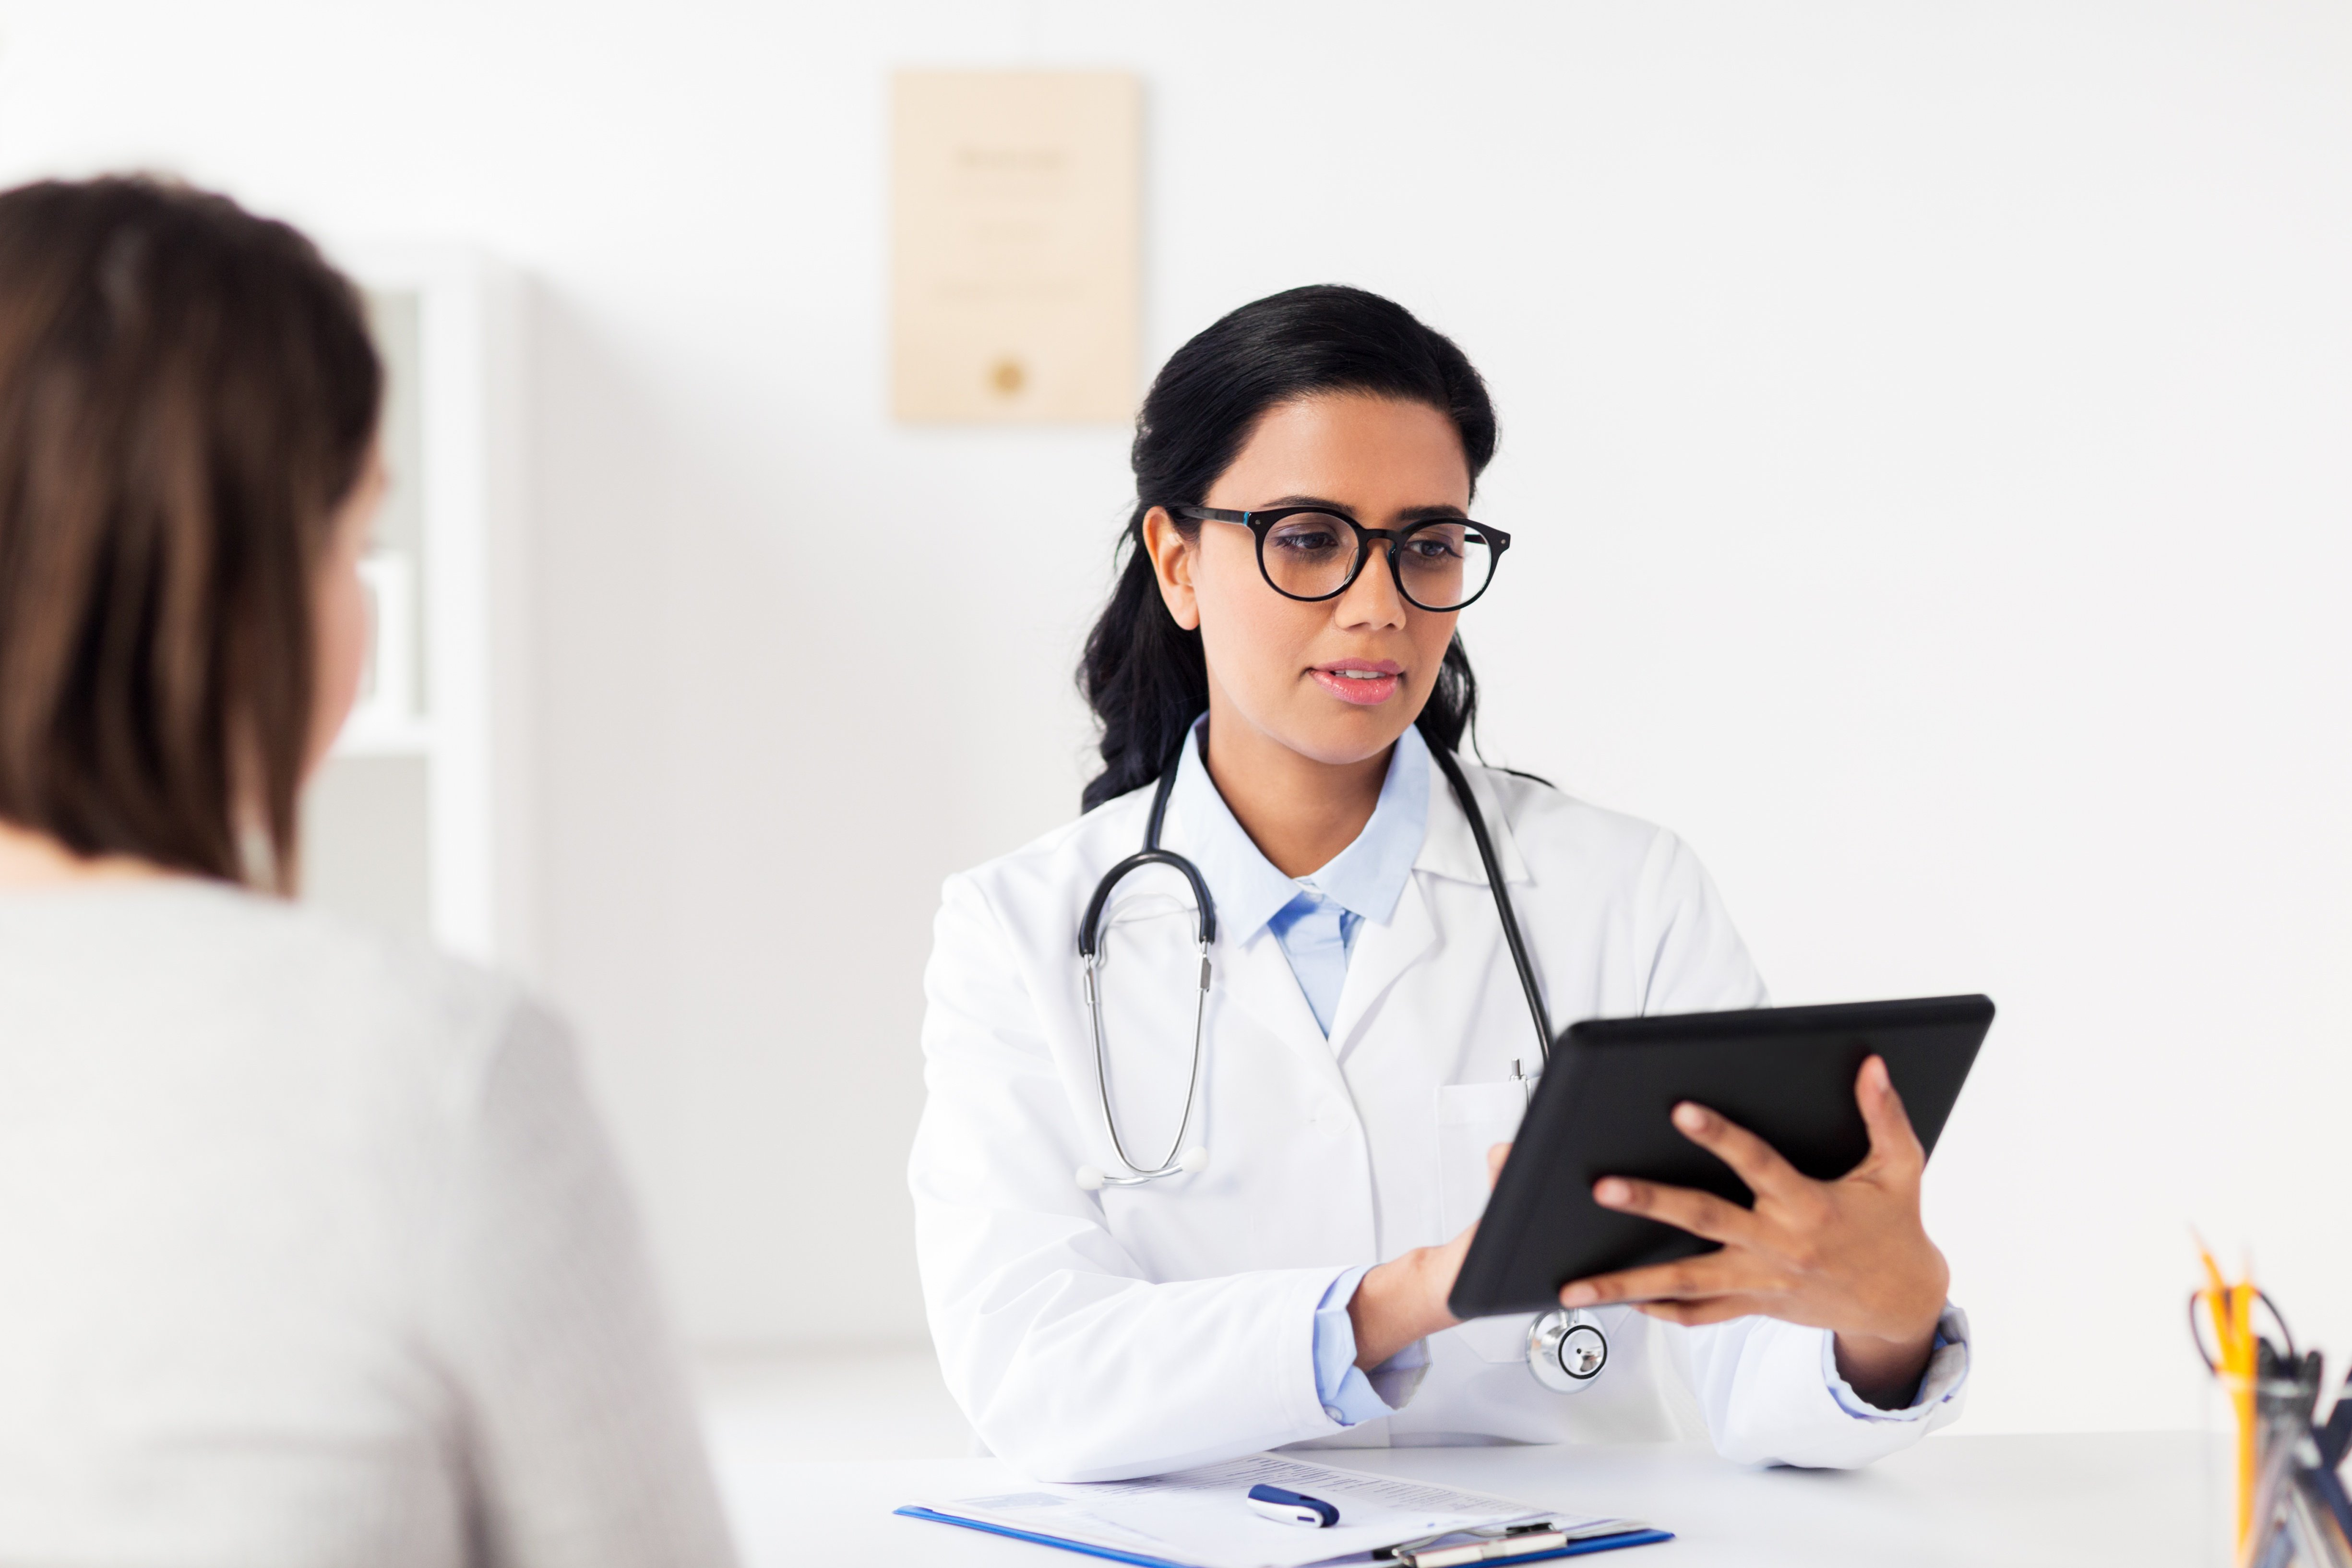 doctor-with-tablet-pc-and-woman-at-hospital-PA6CNHH